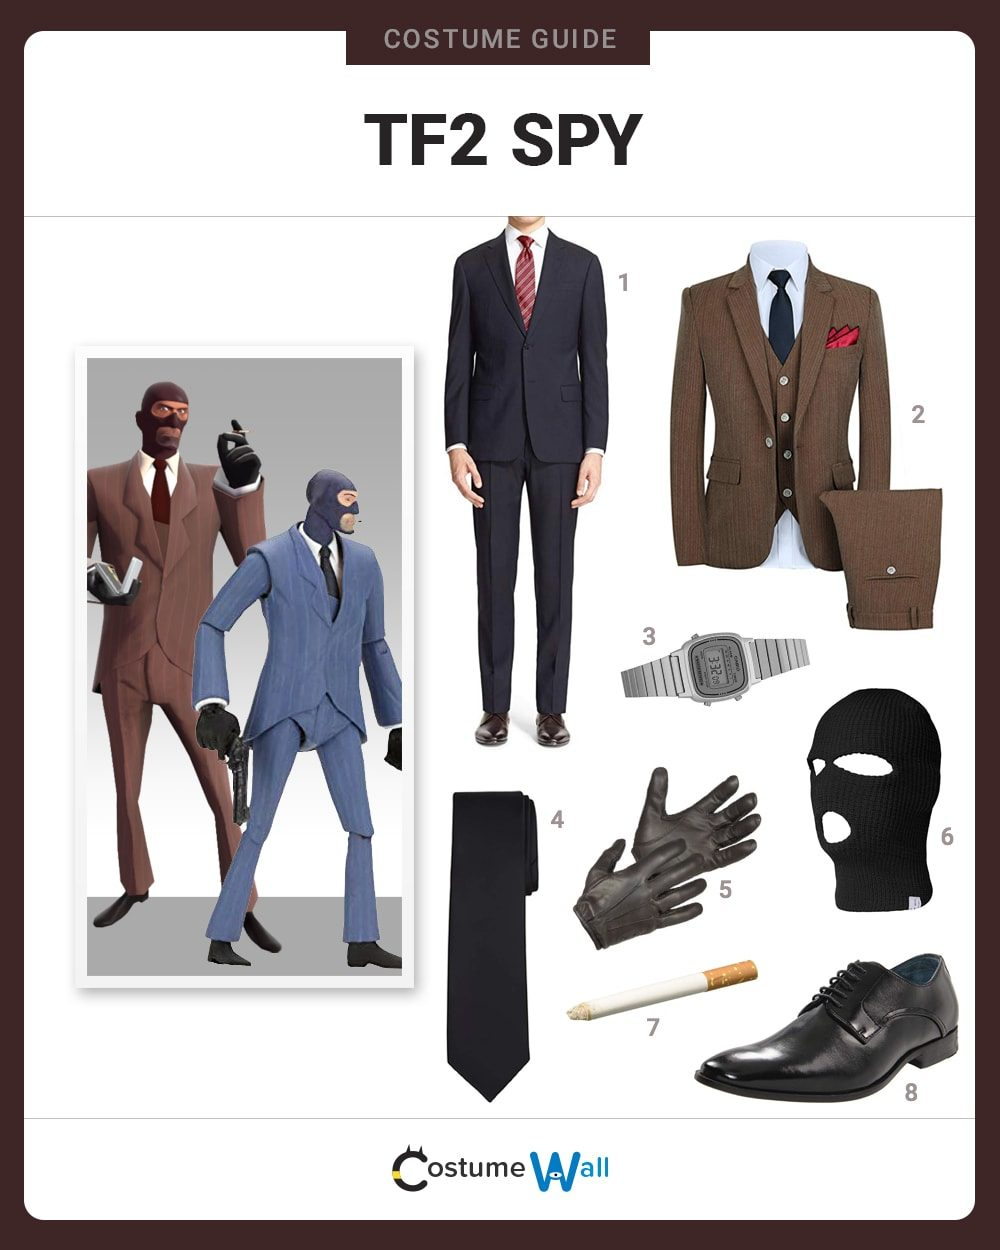 TF2 Spy Costume Guide